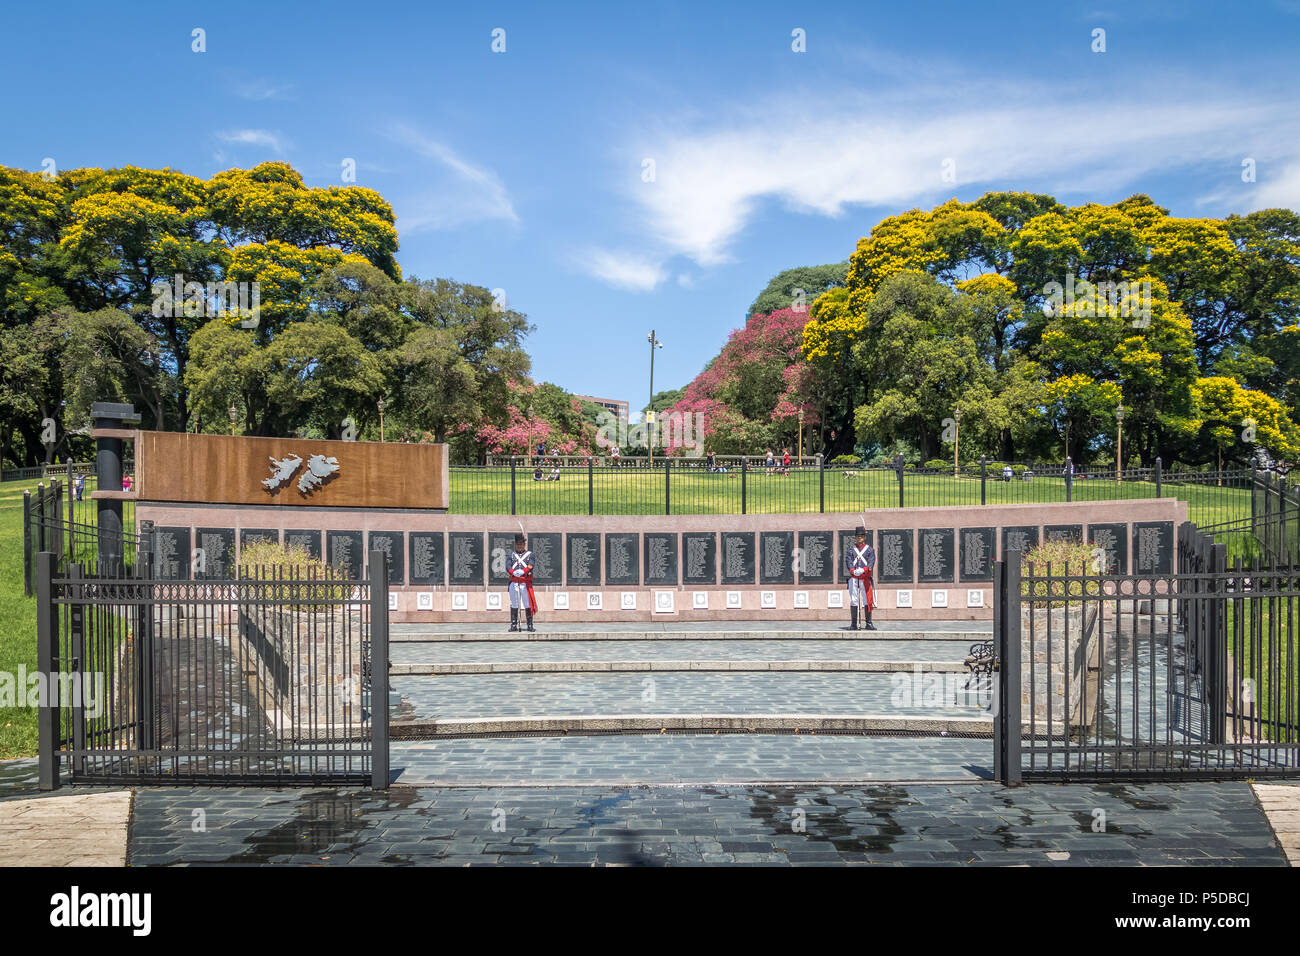 Monument to the Fallen in Malvinas at General San Martin Plaza in Retiro - Buenos Aires, Argentina - Stock Image